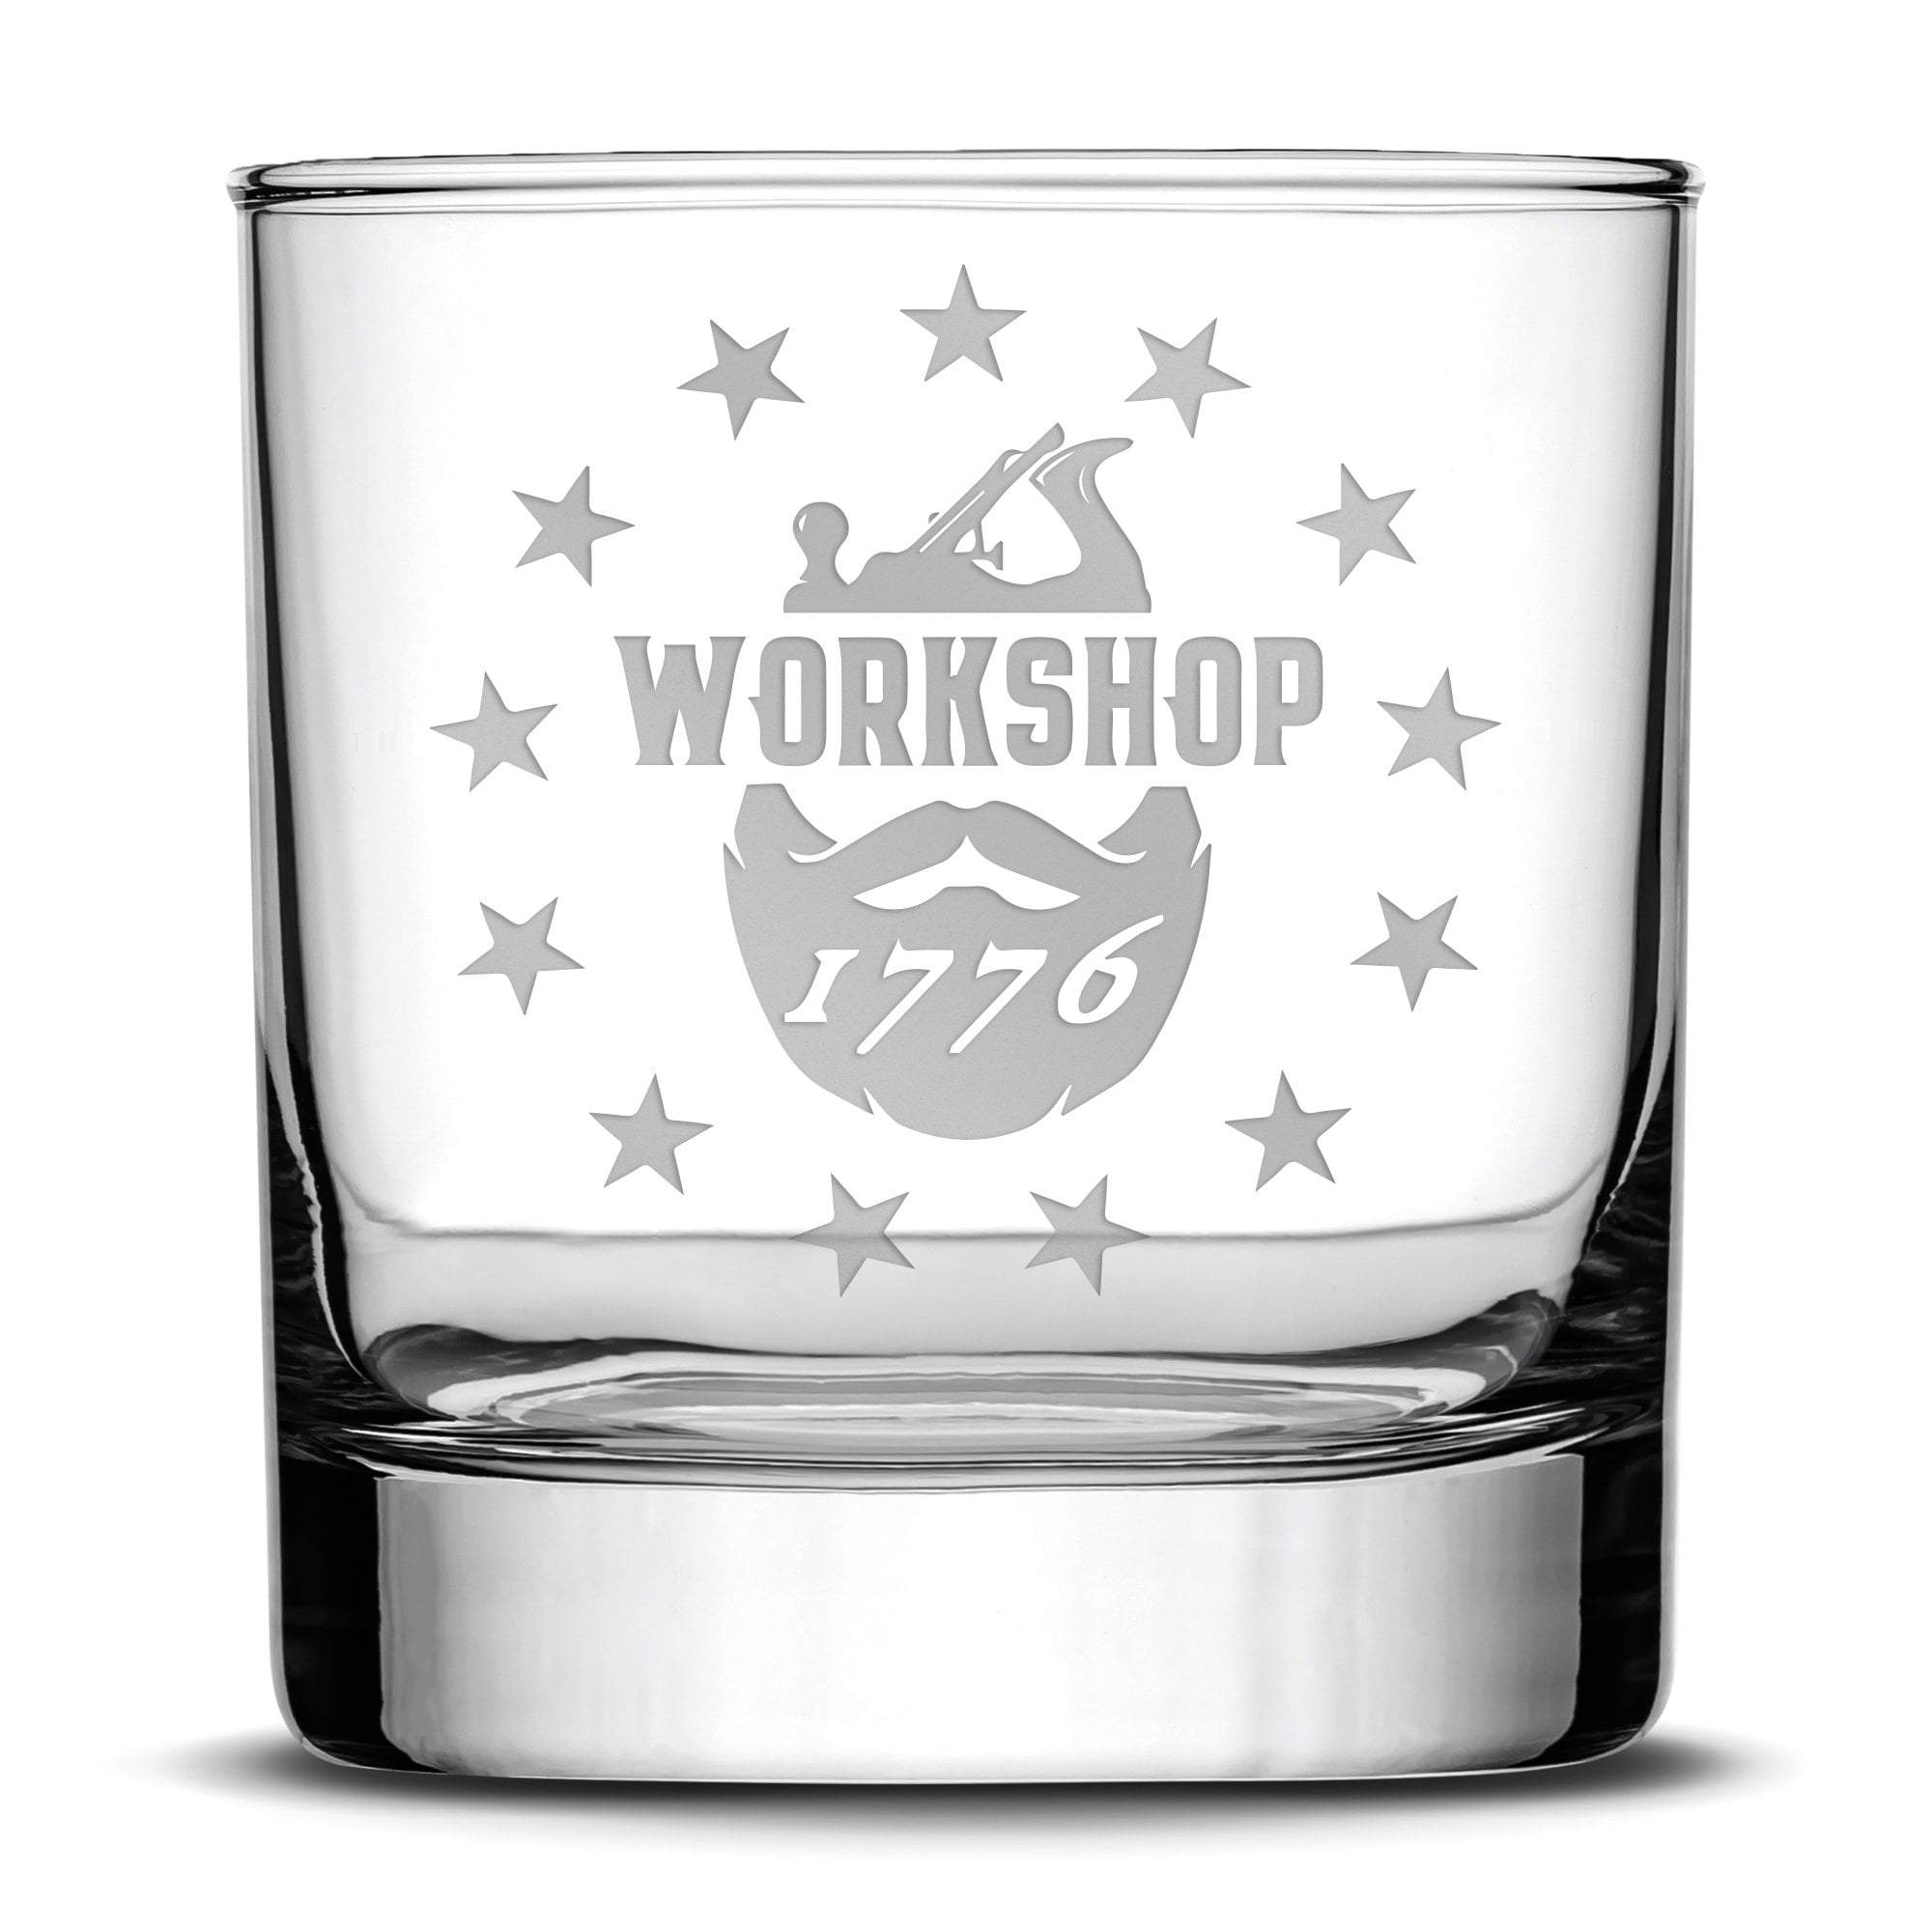 Workshop 1776 Whiskey Rocks Glass, 10oz by Integrity Bottles